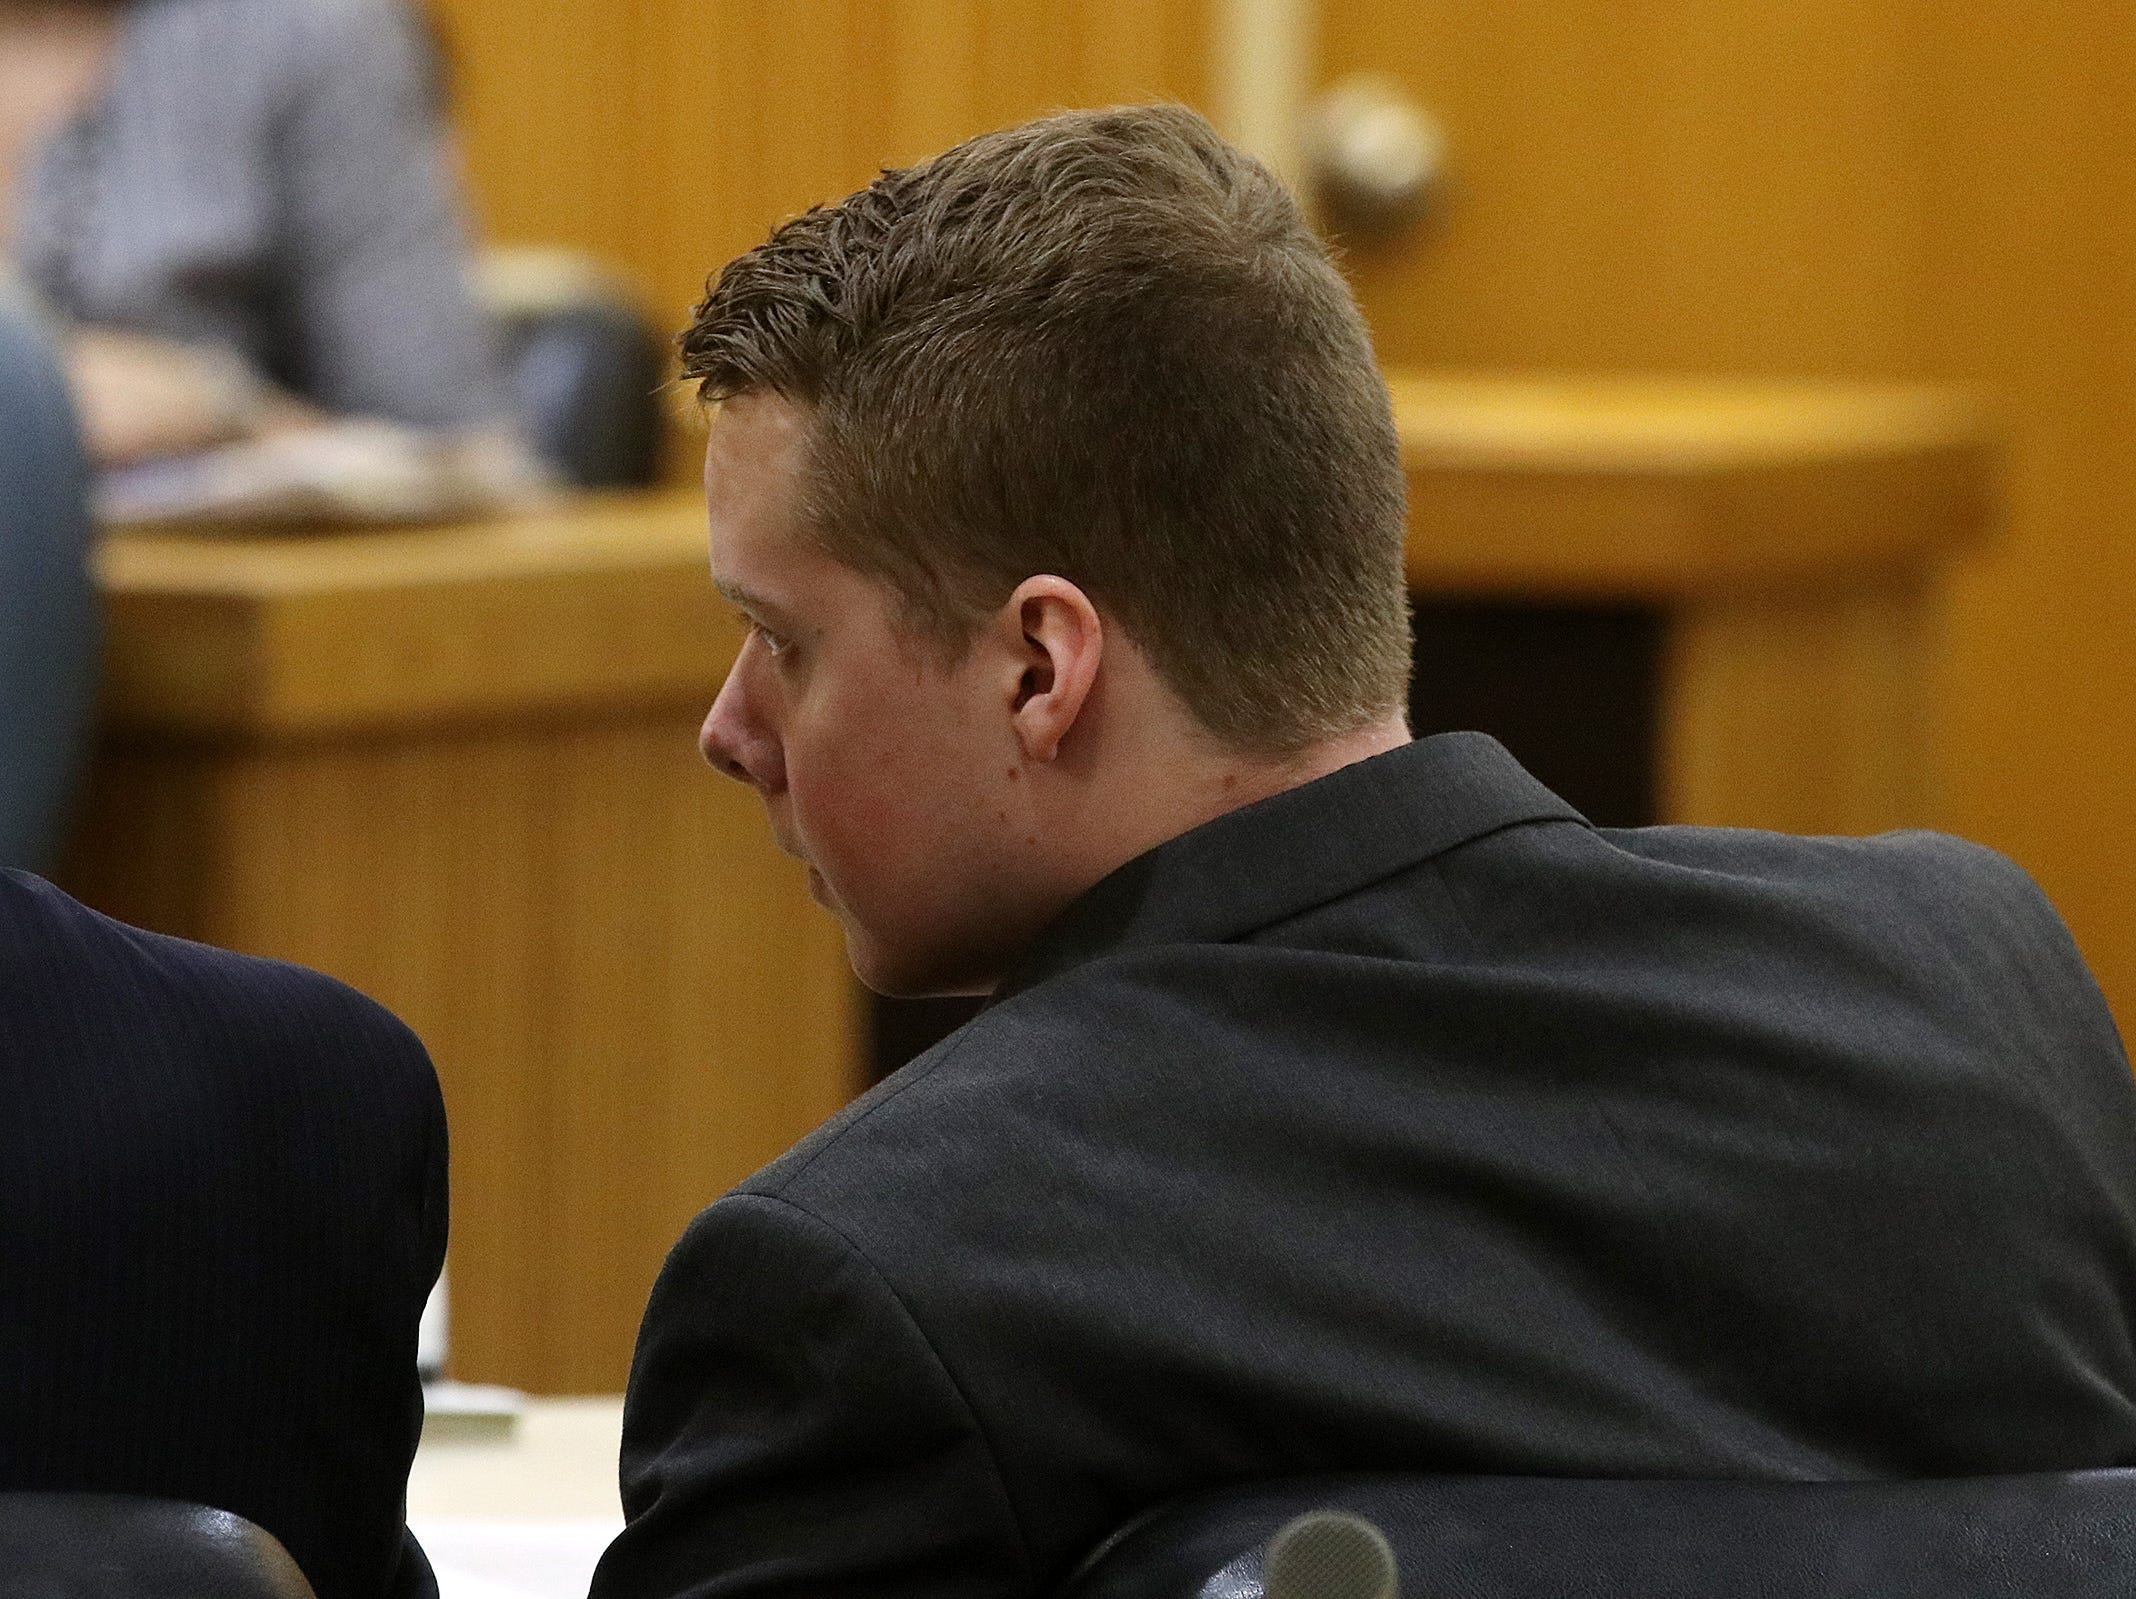 Liam McAtasney, who is charged with the murder of former high school classmate, Sarah Stern, appears for the first day of trial before Superior Court Judge Richard W. English at the Monmouth County Courthouse in Freehold, NJ Wednesday January 23, 2019.